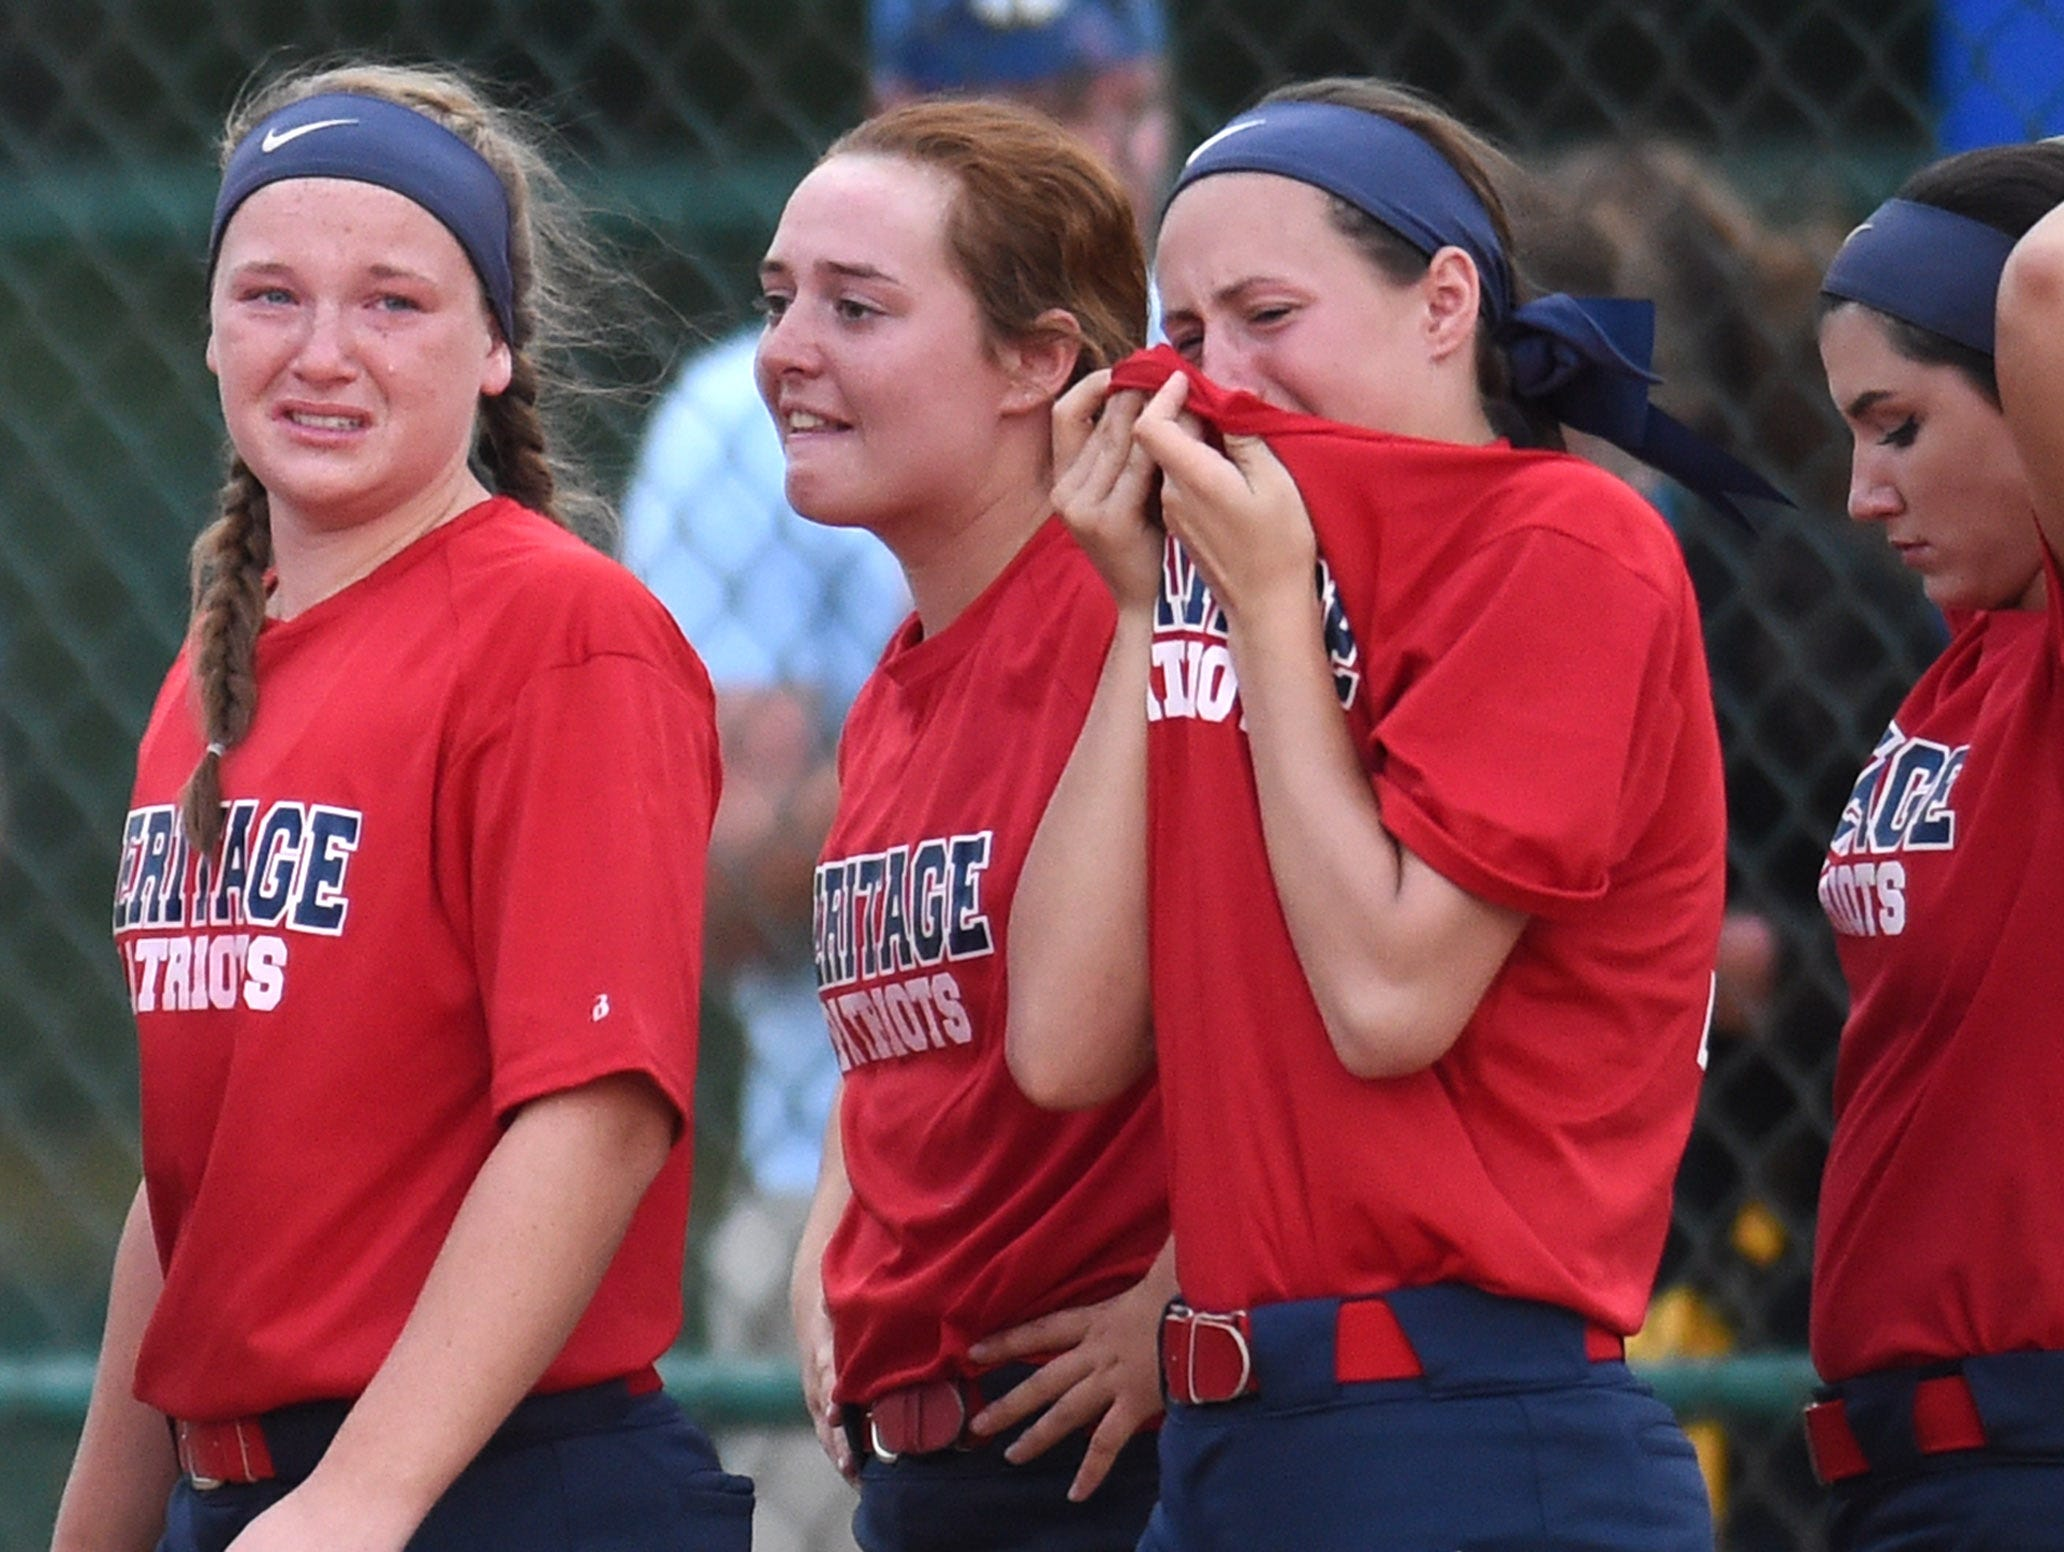 White House Heritage players react after losing 4-0 in a Class AA state championship softball game to CAK at StarPlex Park in Murfreesboro during Spring Fling on Friday, May 27, 2016.